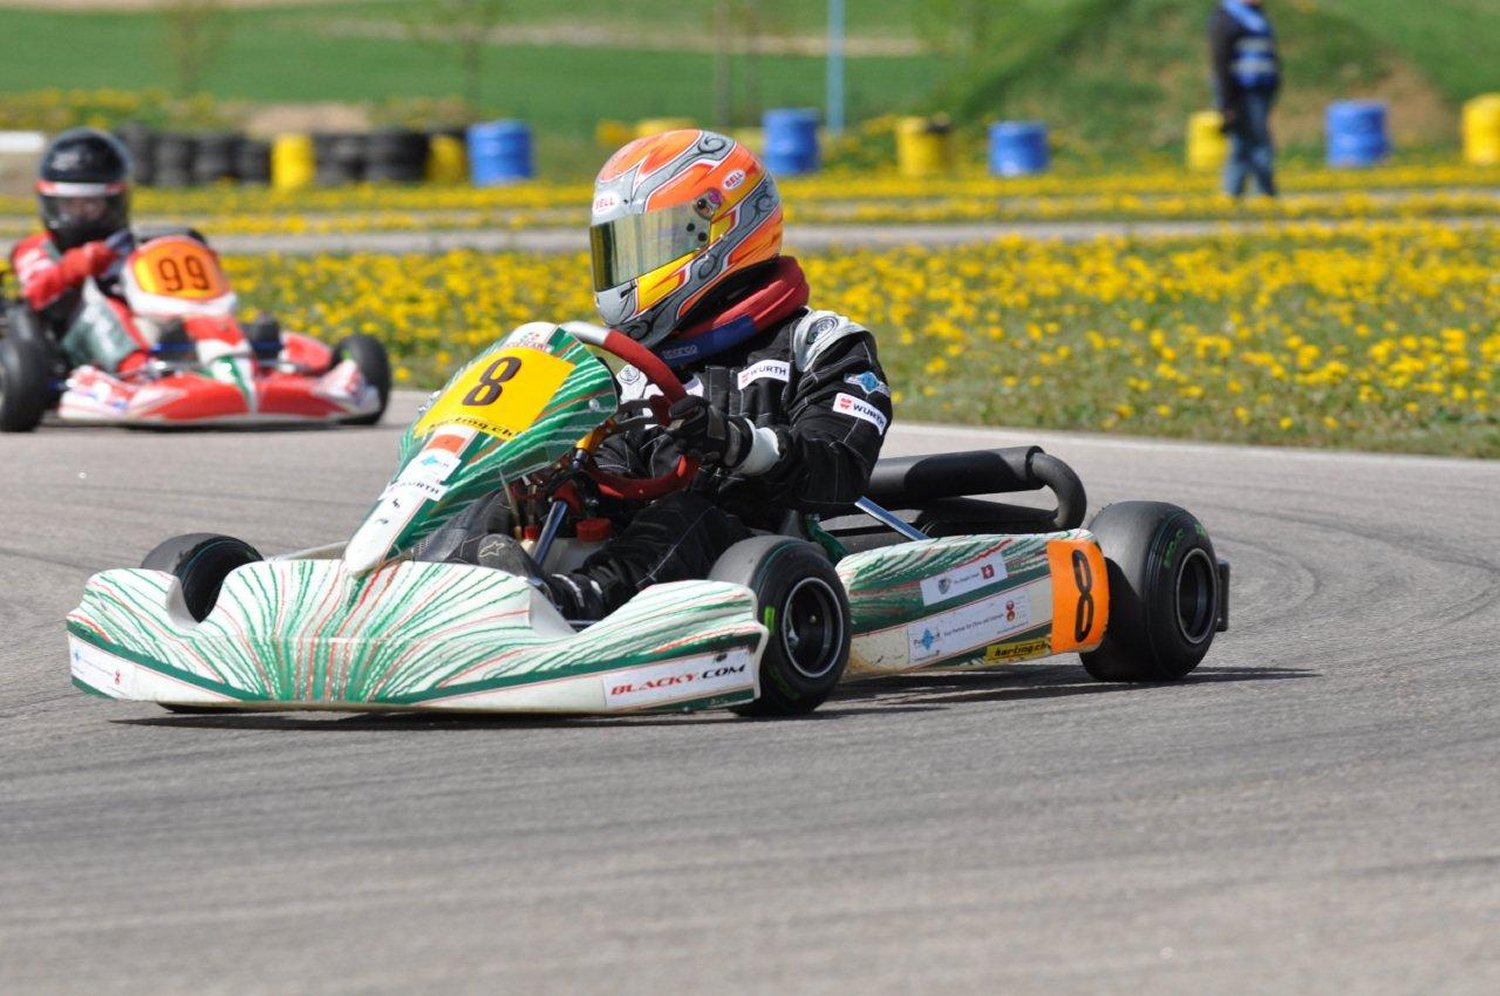 Rotax-2012-Runde1-Mirecourt-France-Titus